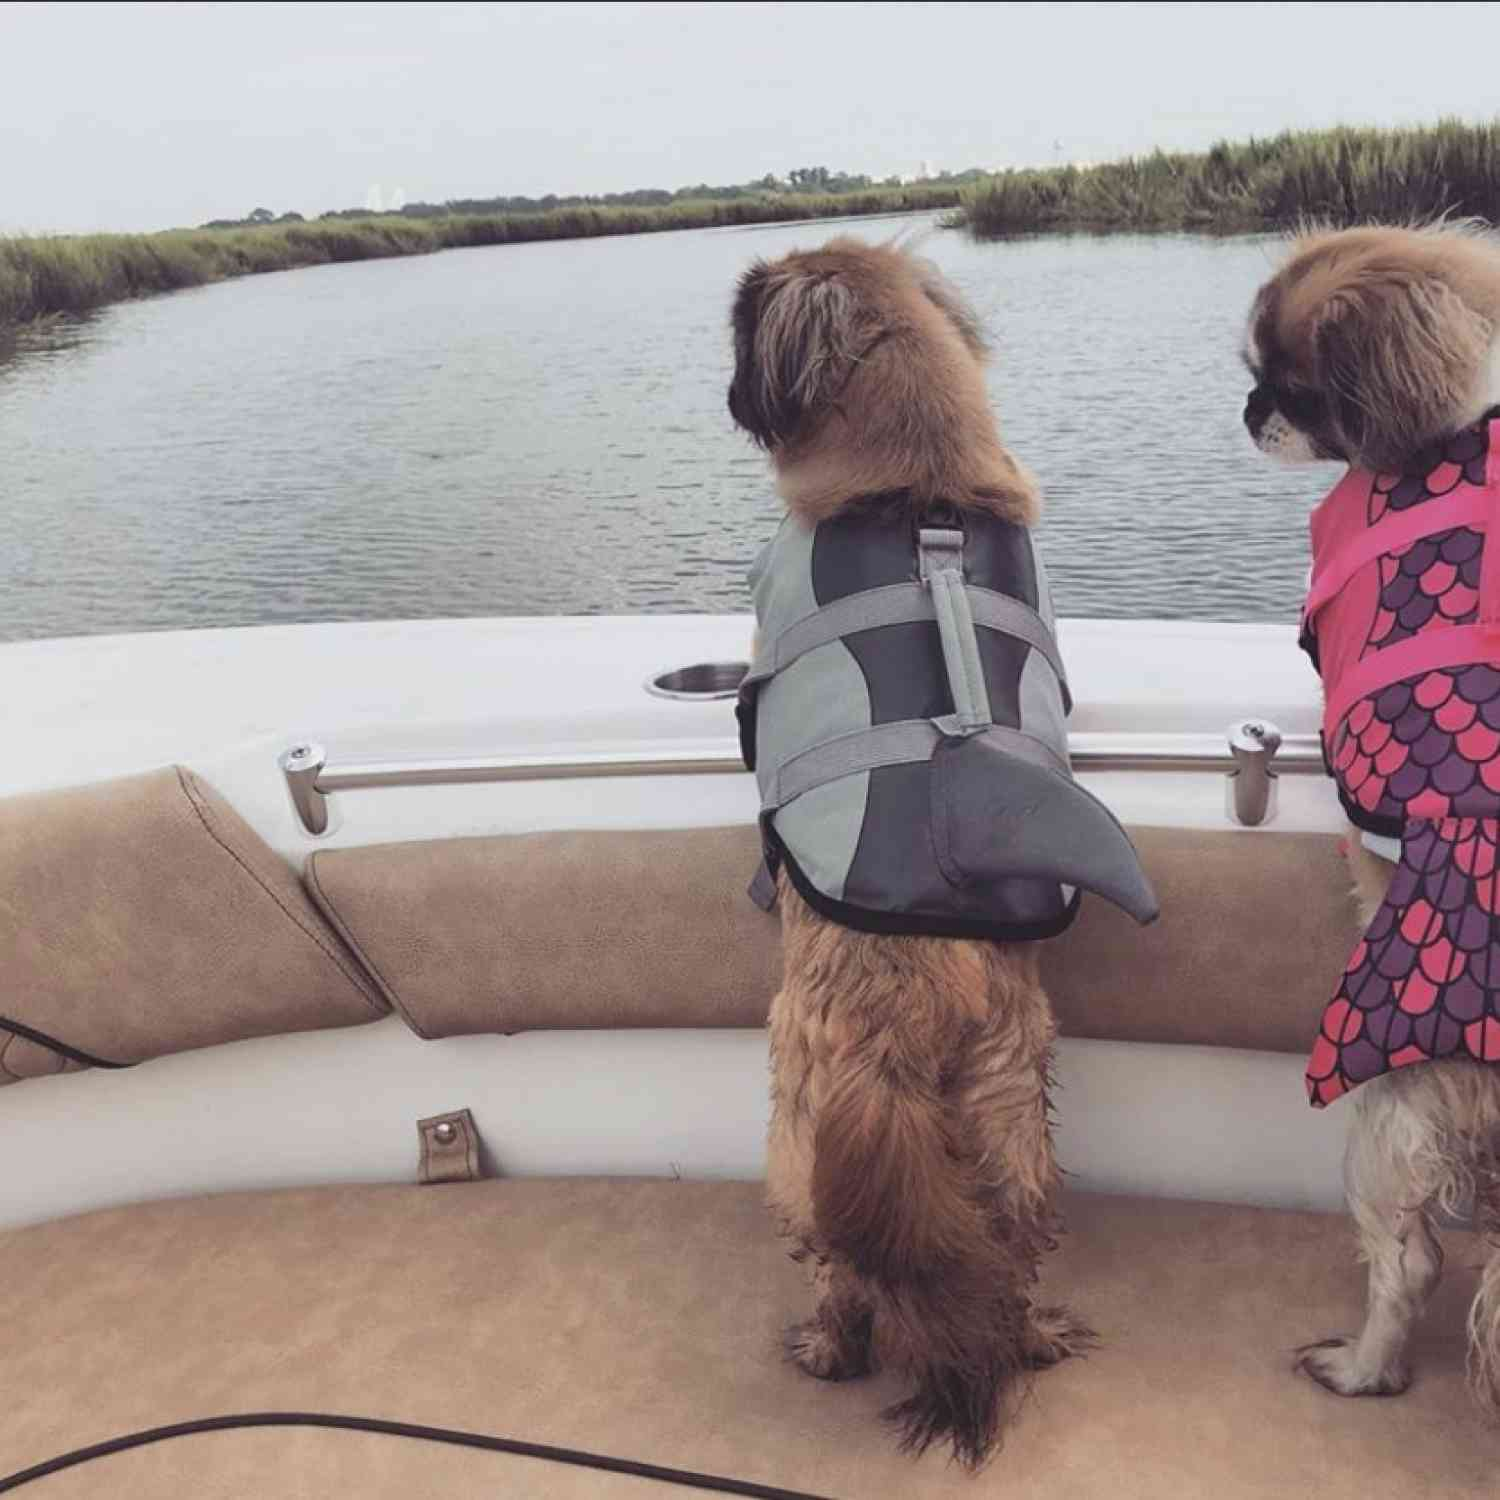 Our fur babies love being on the boat just as much as we do .... but, safety first!